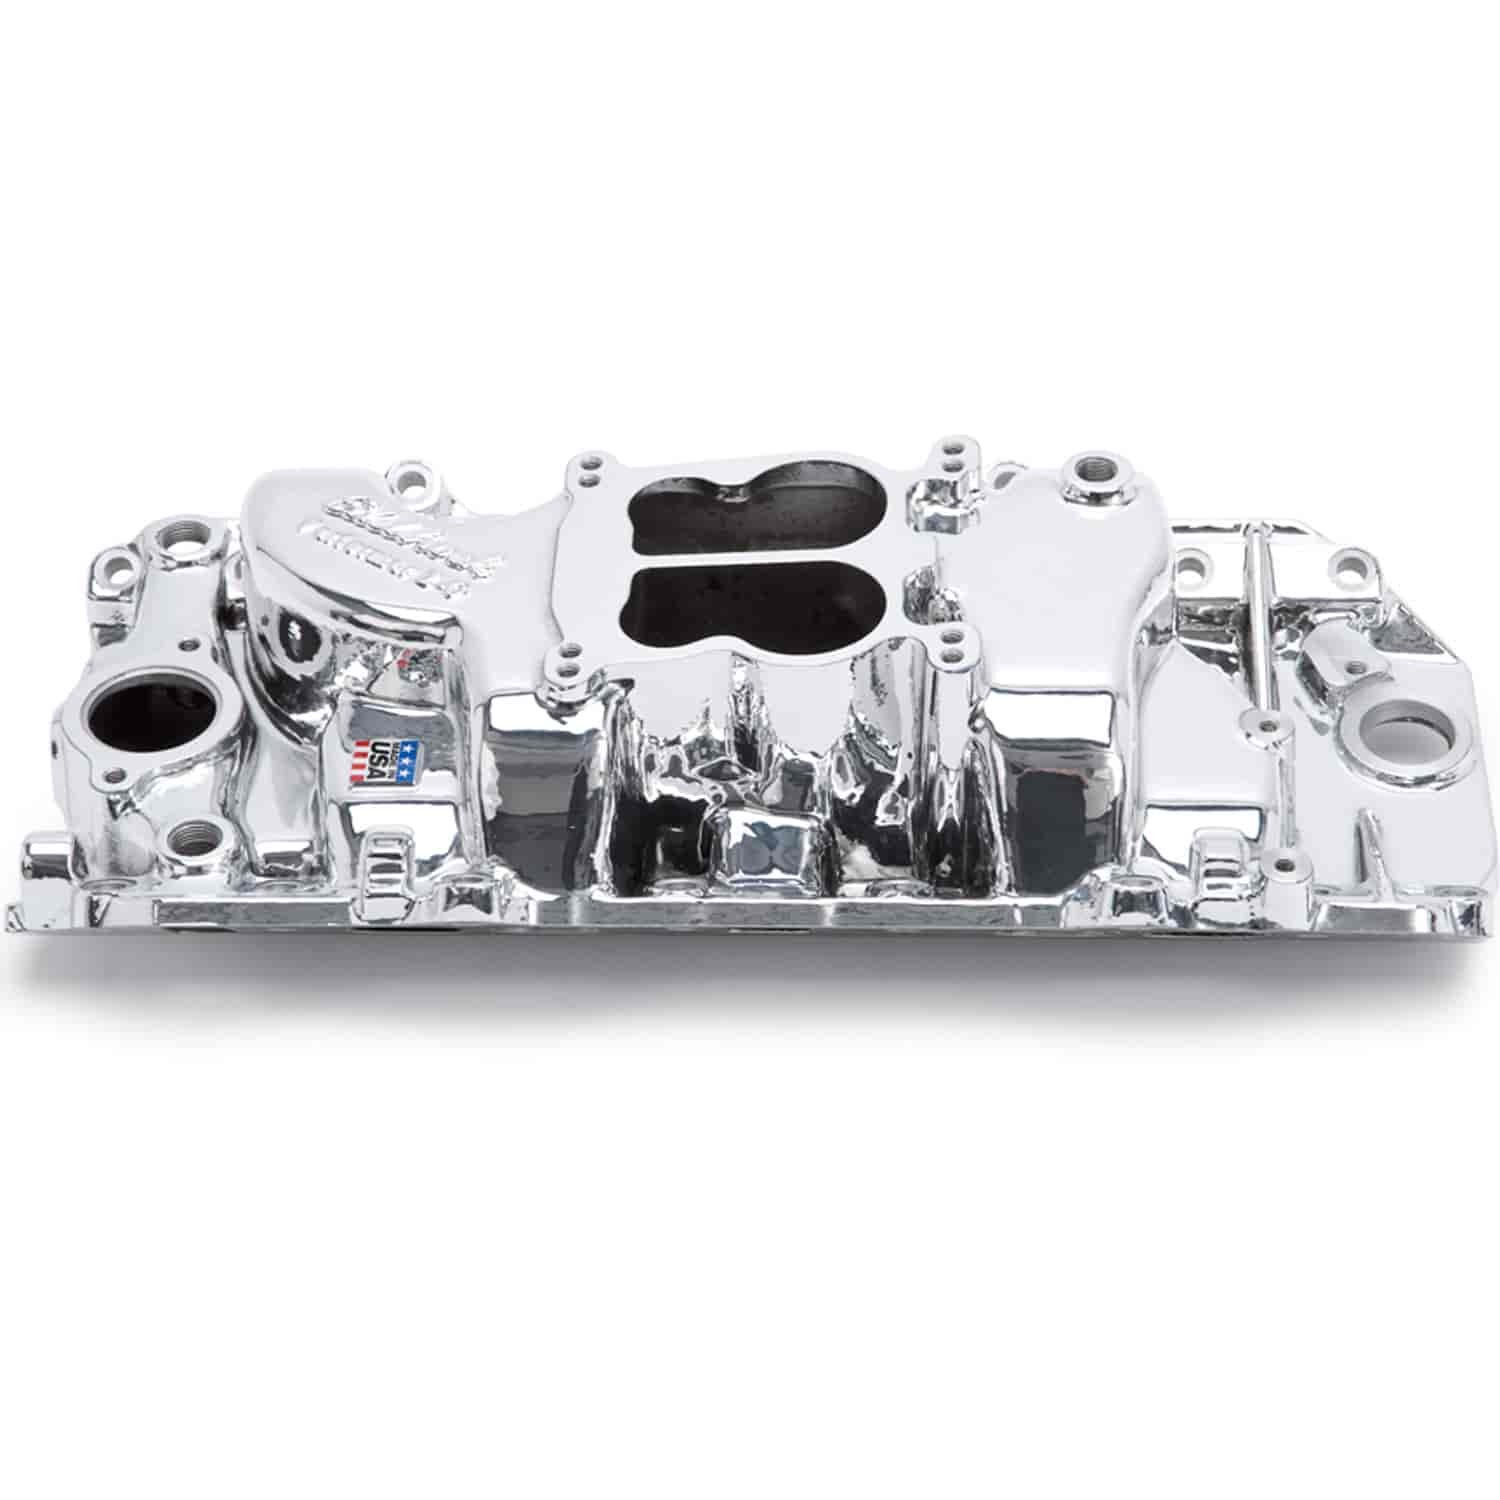 Edelbrock 21614 - Edelbrock Performer Intake Manifolds for Chevy